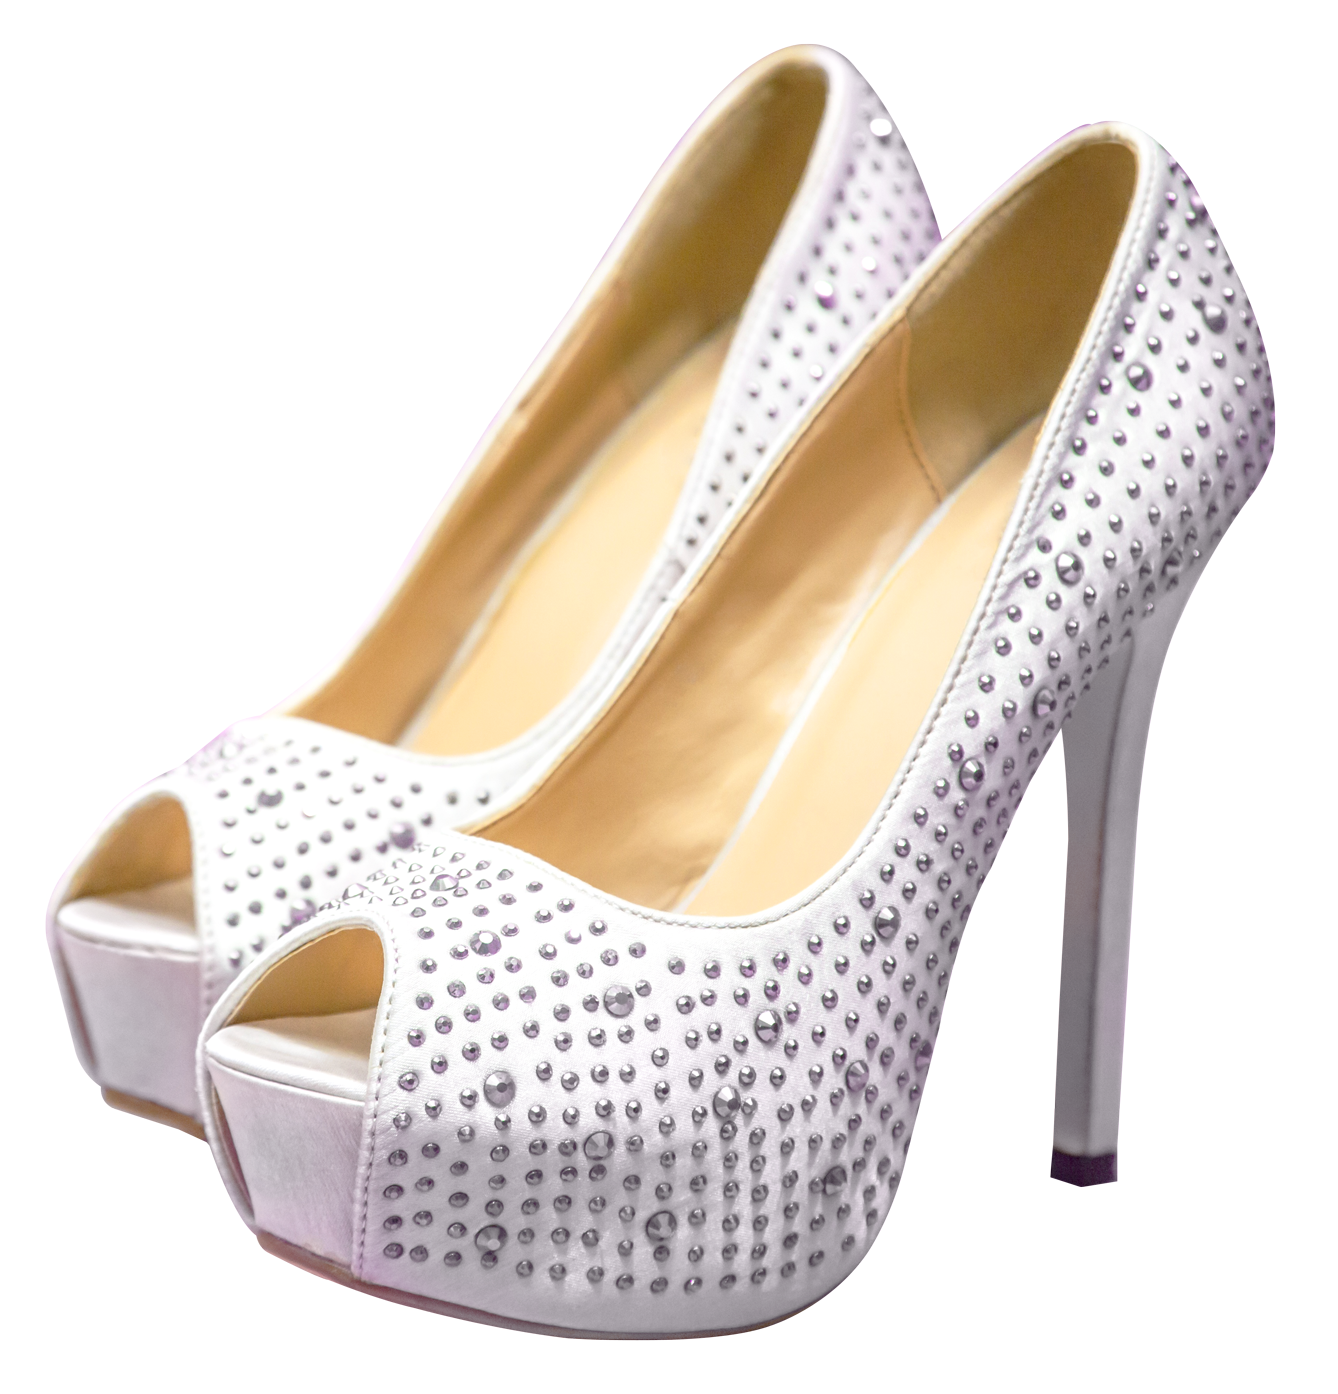 Download Images Of High Heels Shoes